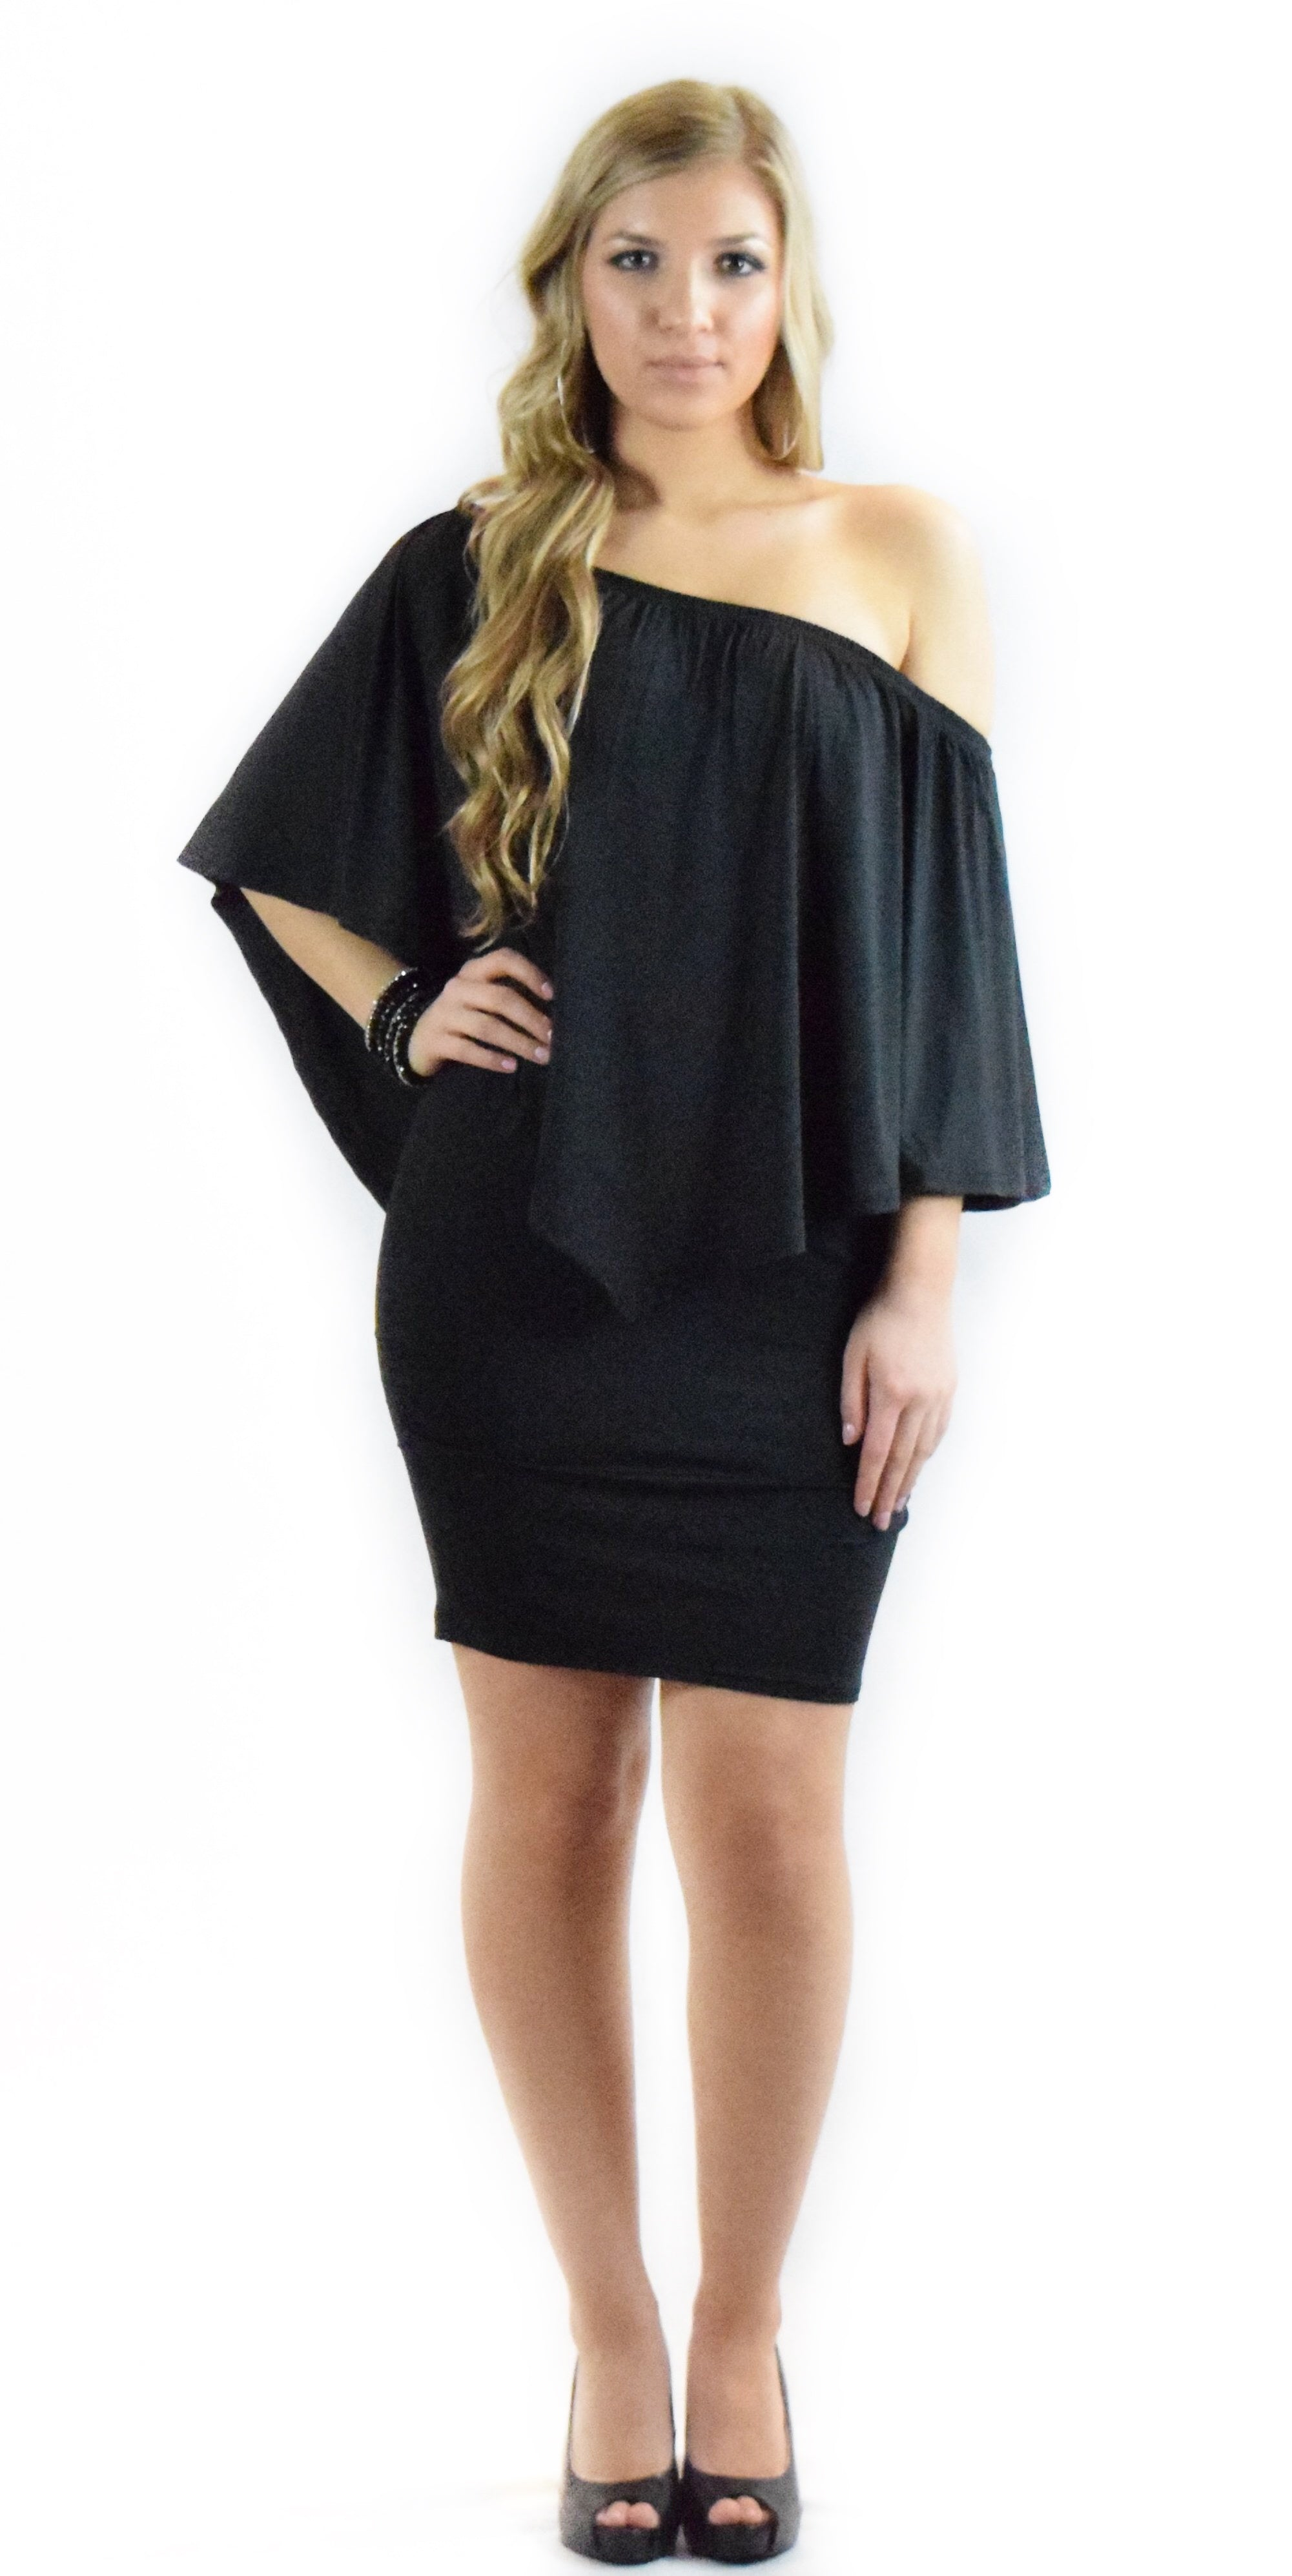 Black off shoulder dress fashion clothing woman trending style